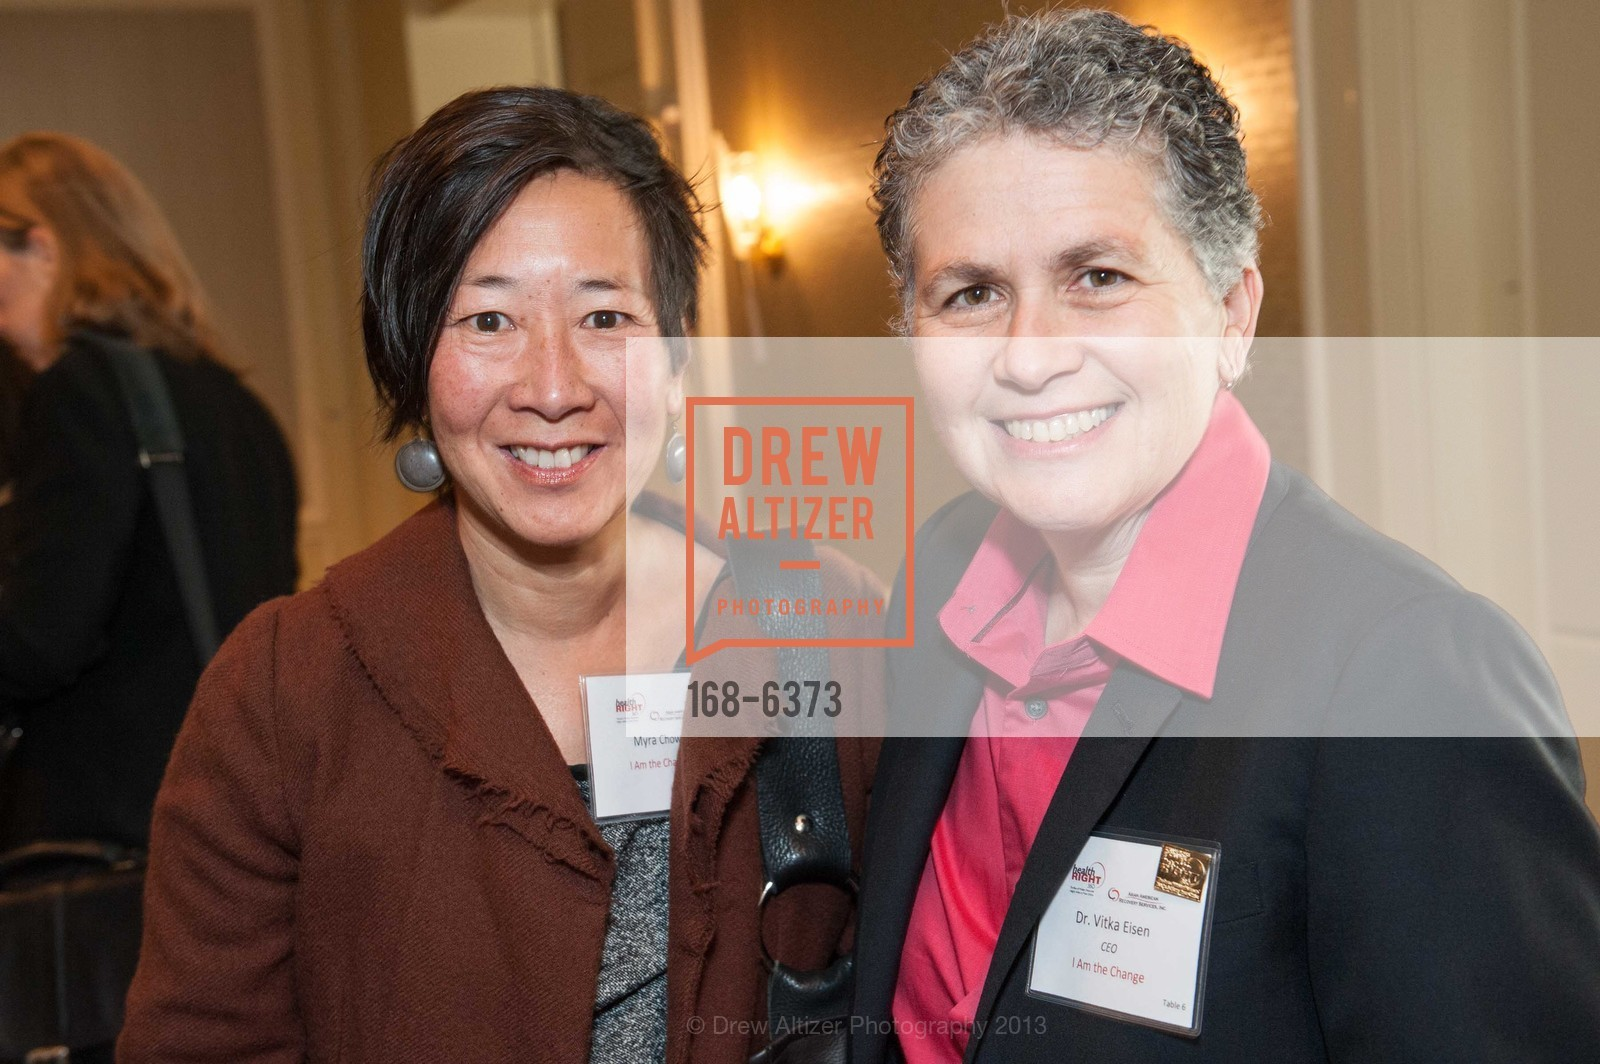 Myra Chow, Vitka Eisen, HEALTH RIGHT 360:  Be the Change 2013, US, November 8th, 2013,Drew Altizer, Drew Altizer Photography, full-service agency, private events, San Francisco photographer, photographer california